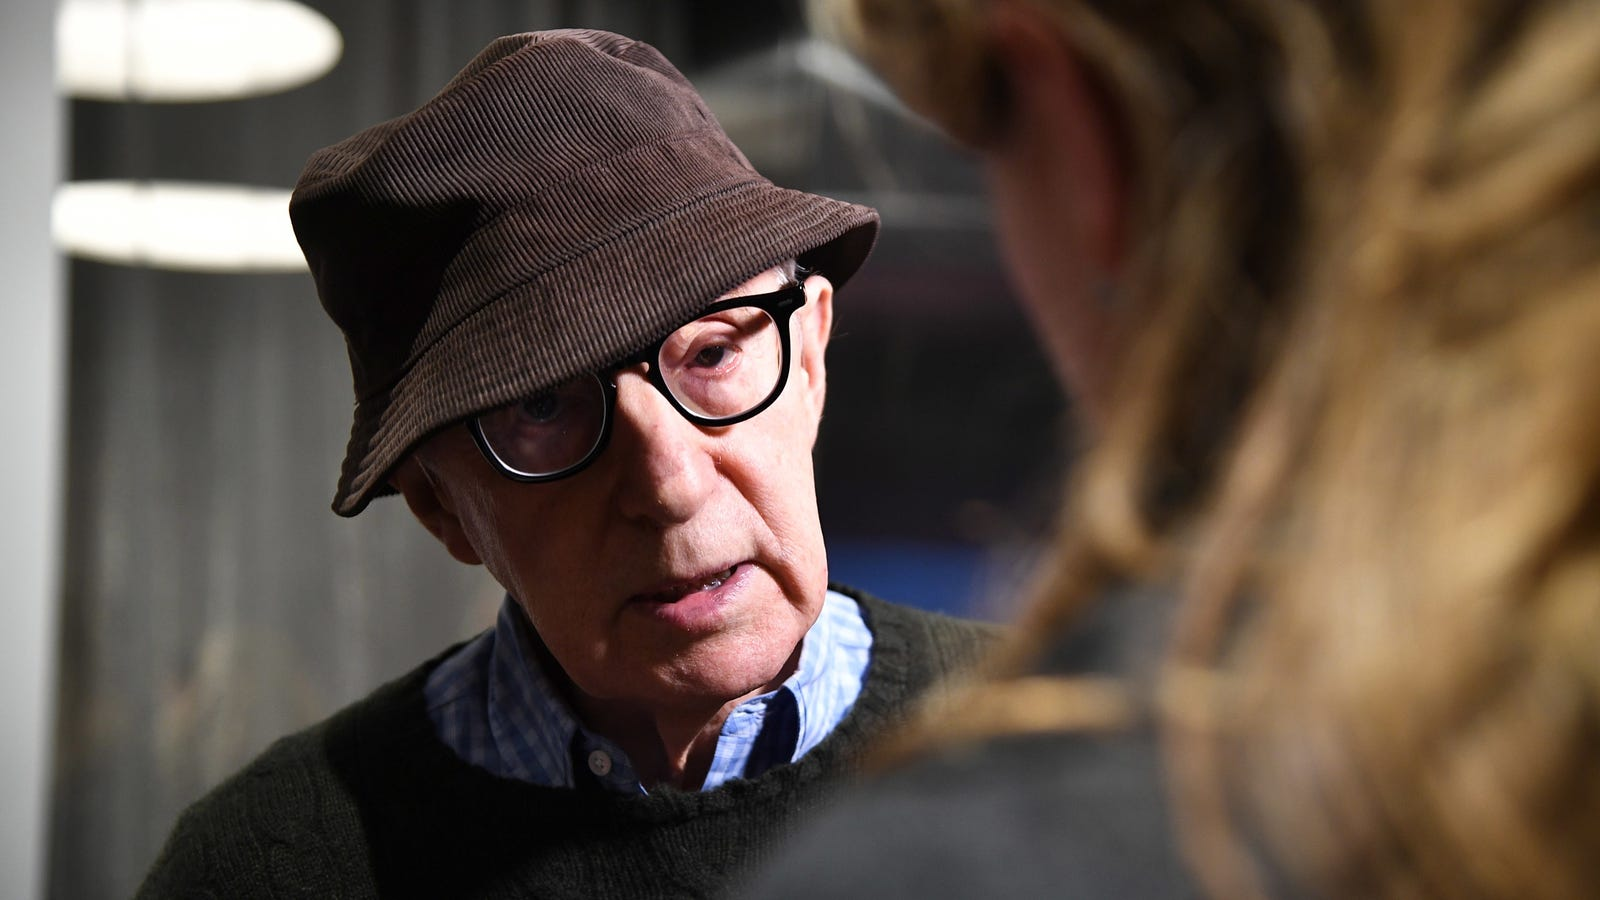 Woody Allen Sues Amazon After They Indefinitely Shelve His Latest Film About a Man Trying to Fuck a Teen